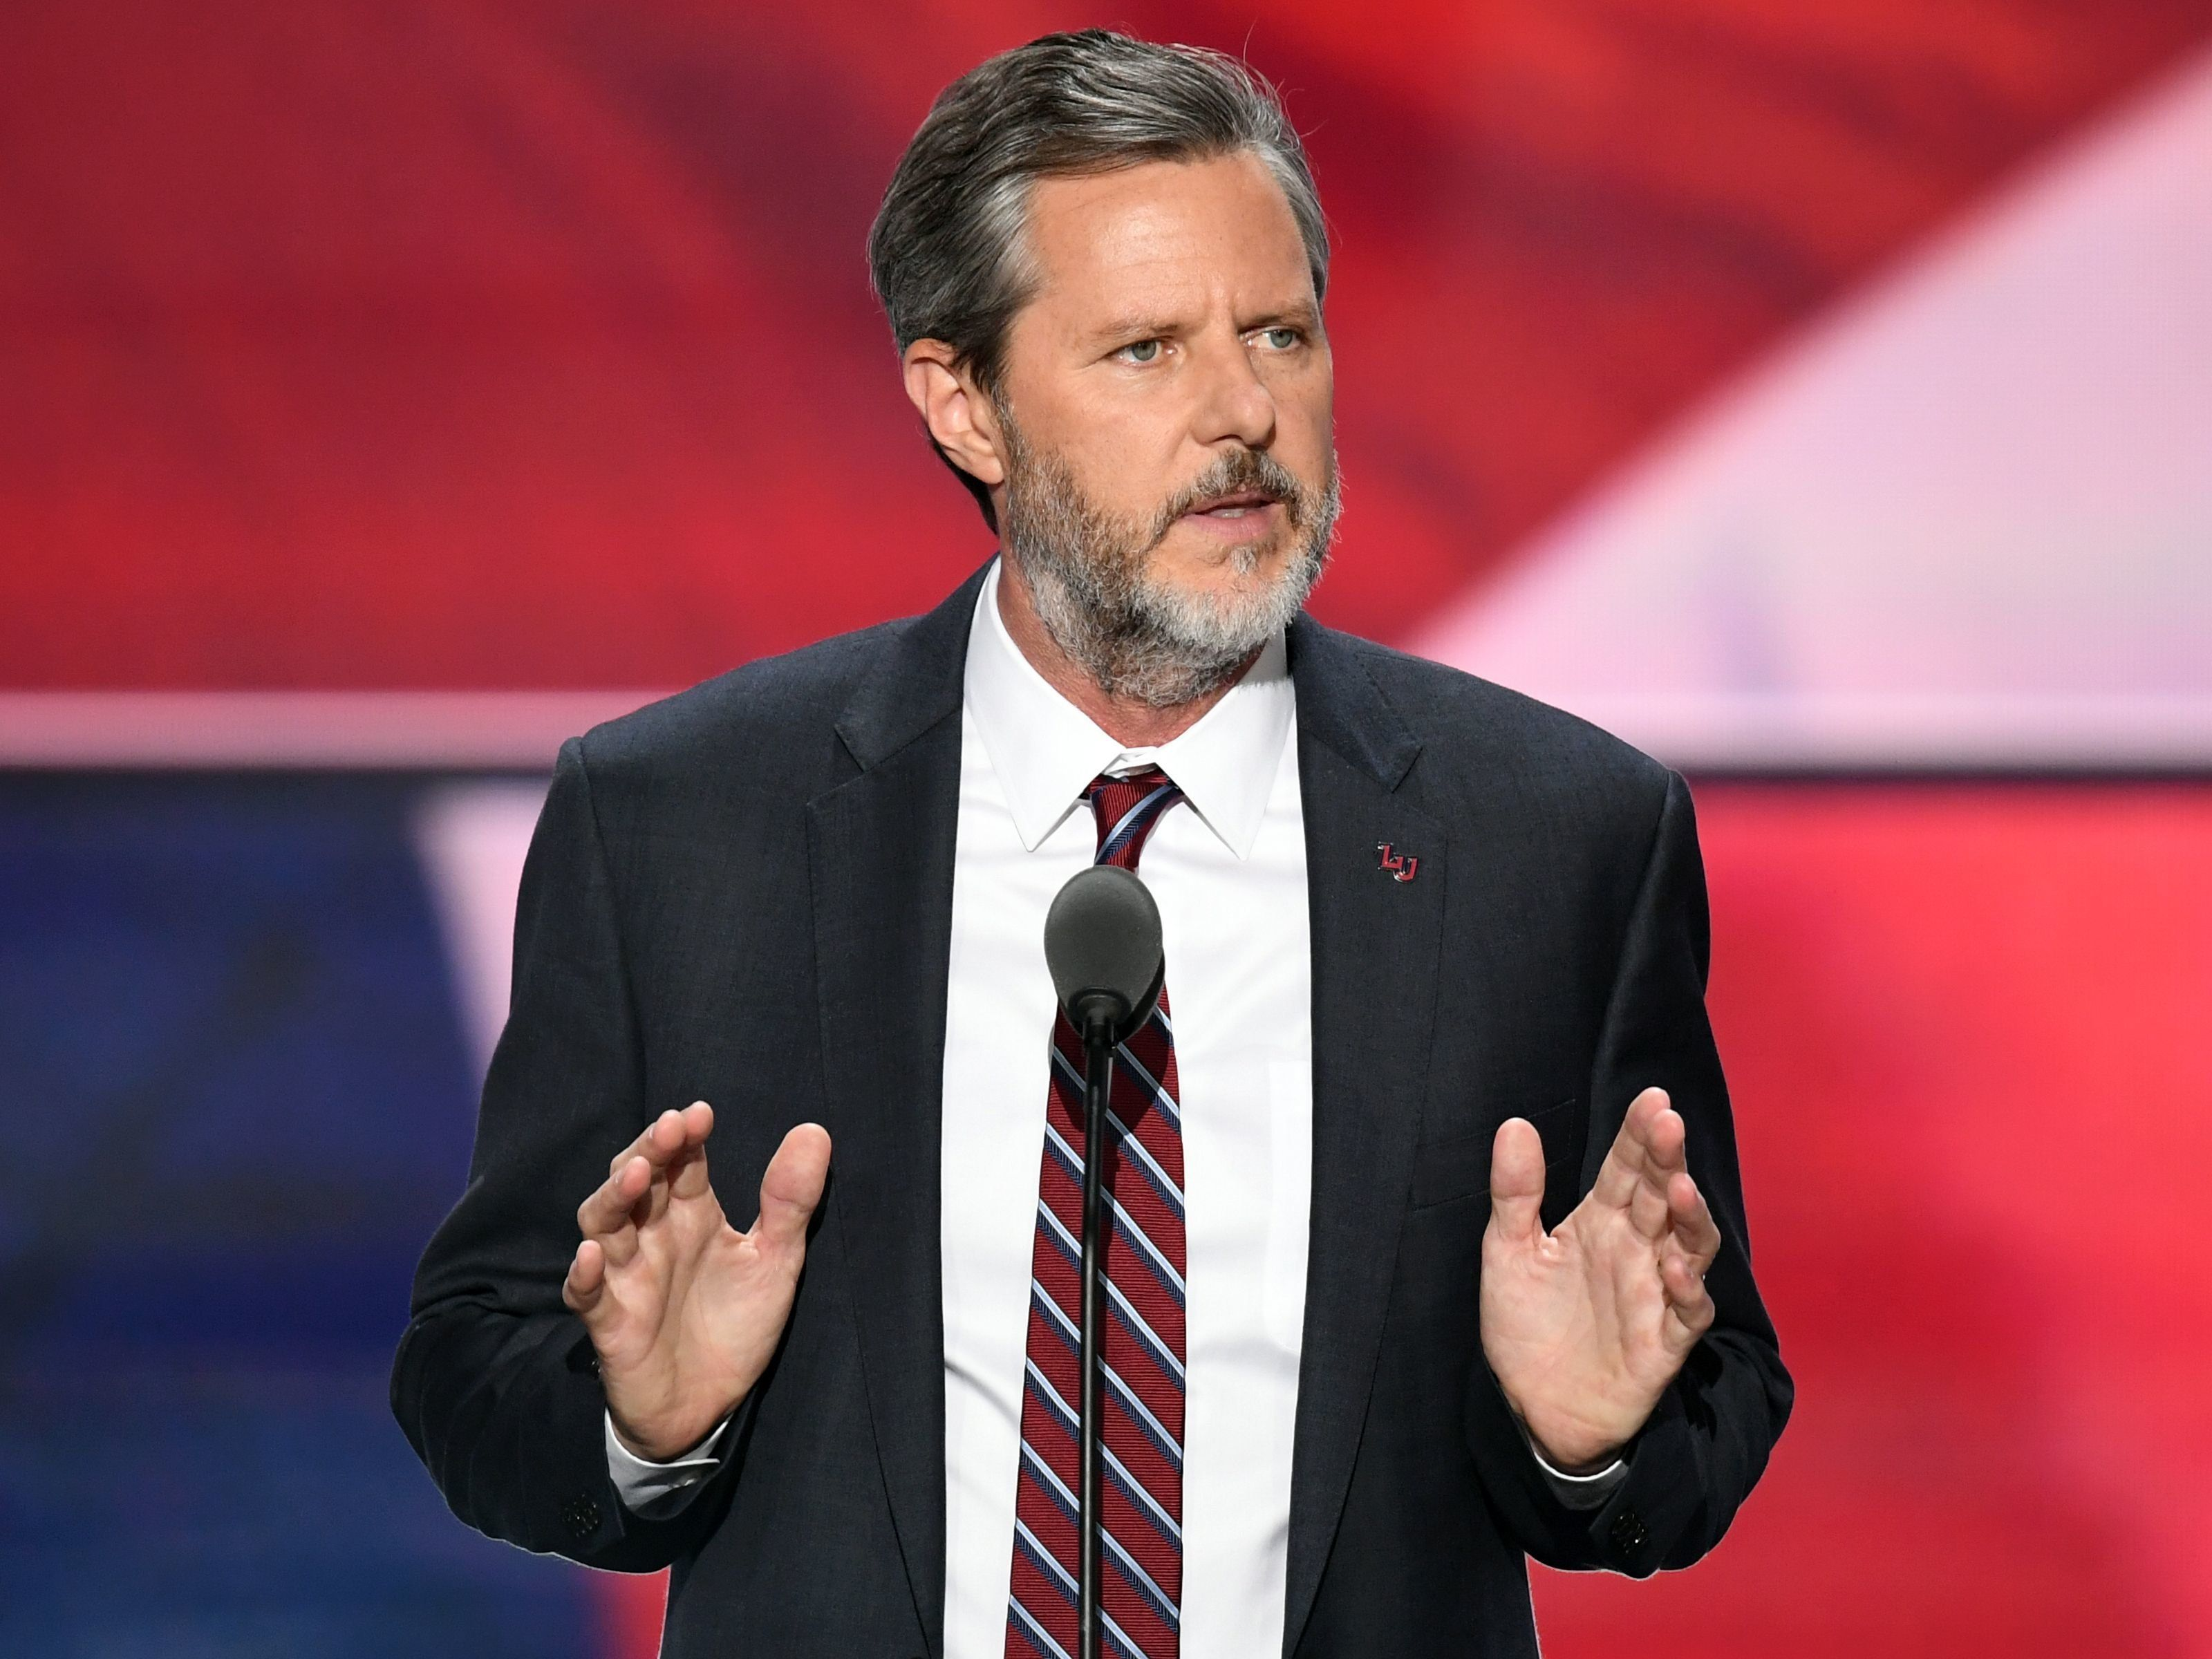 Jerry Falwell Jr Insults Founding Fathers To Defend Trumps Jerky Behavior